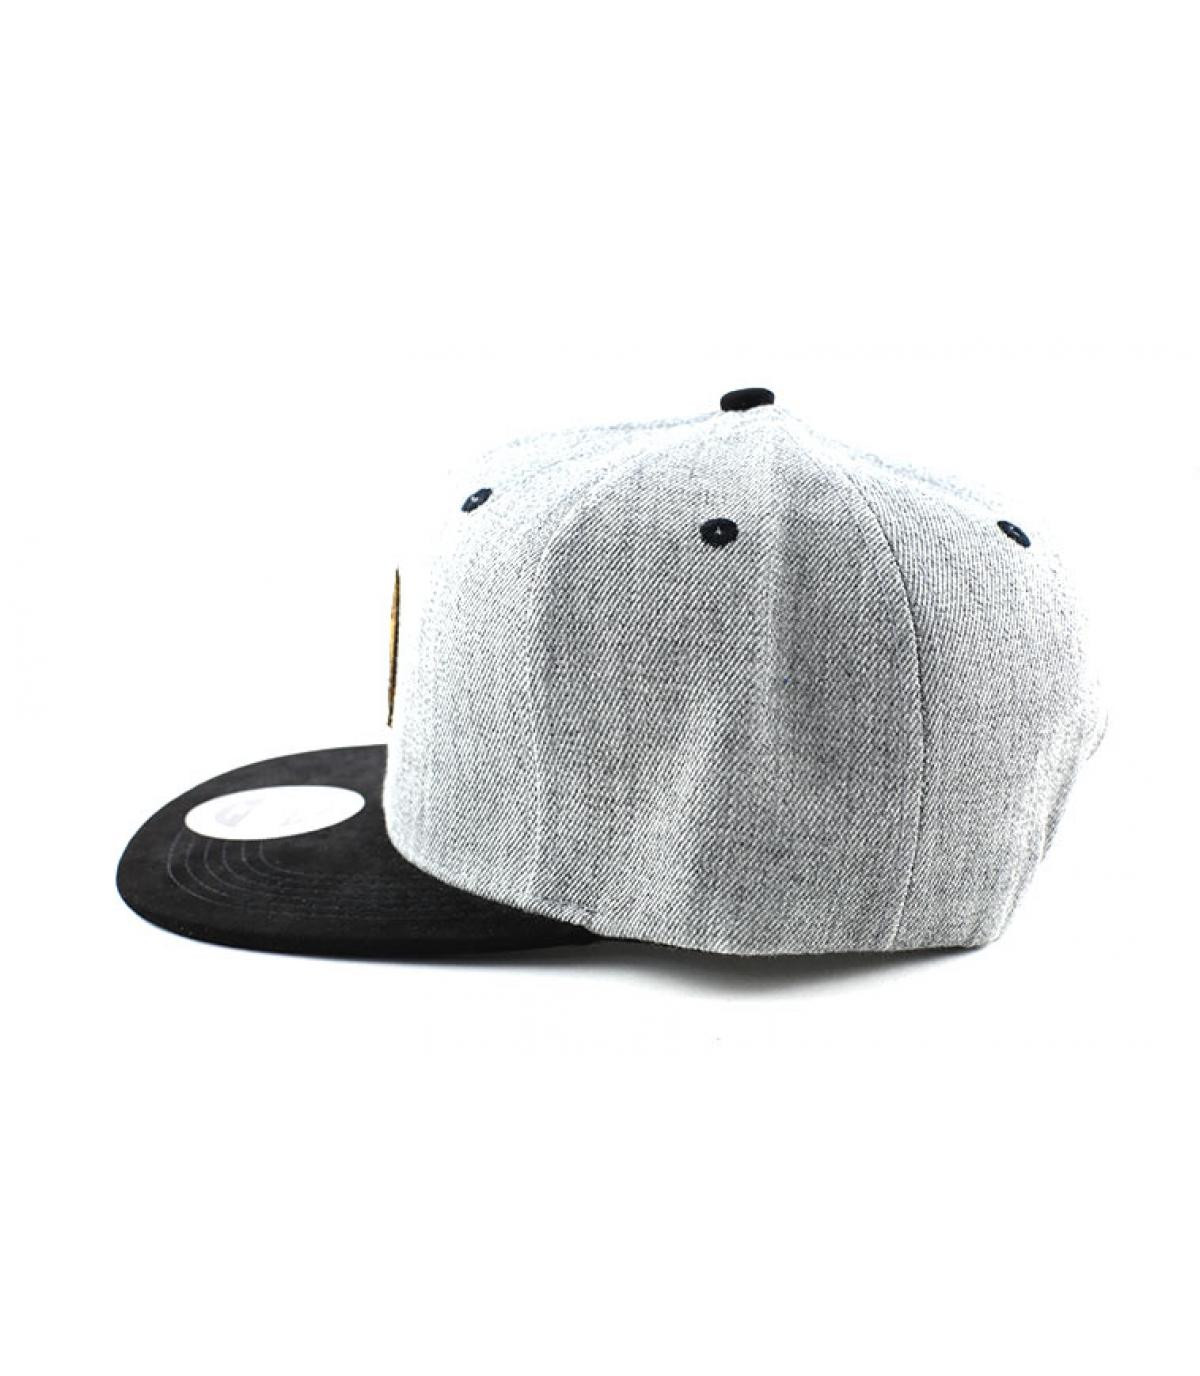 Détails Snapback The Wall grey black - image 4